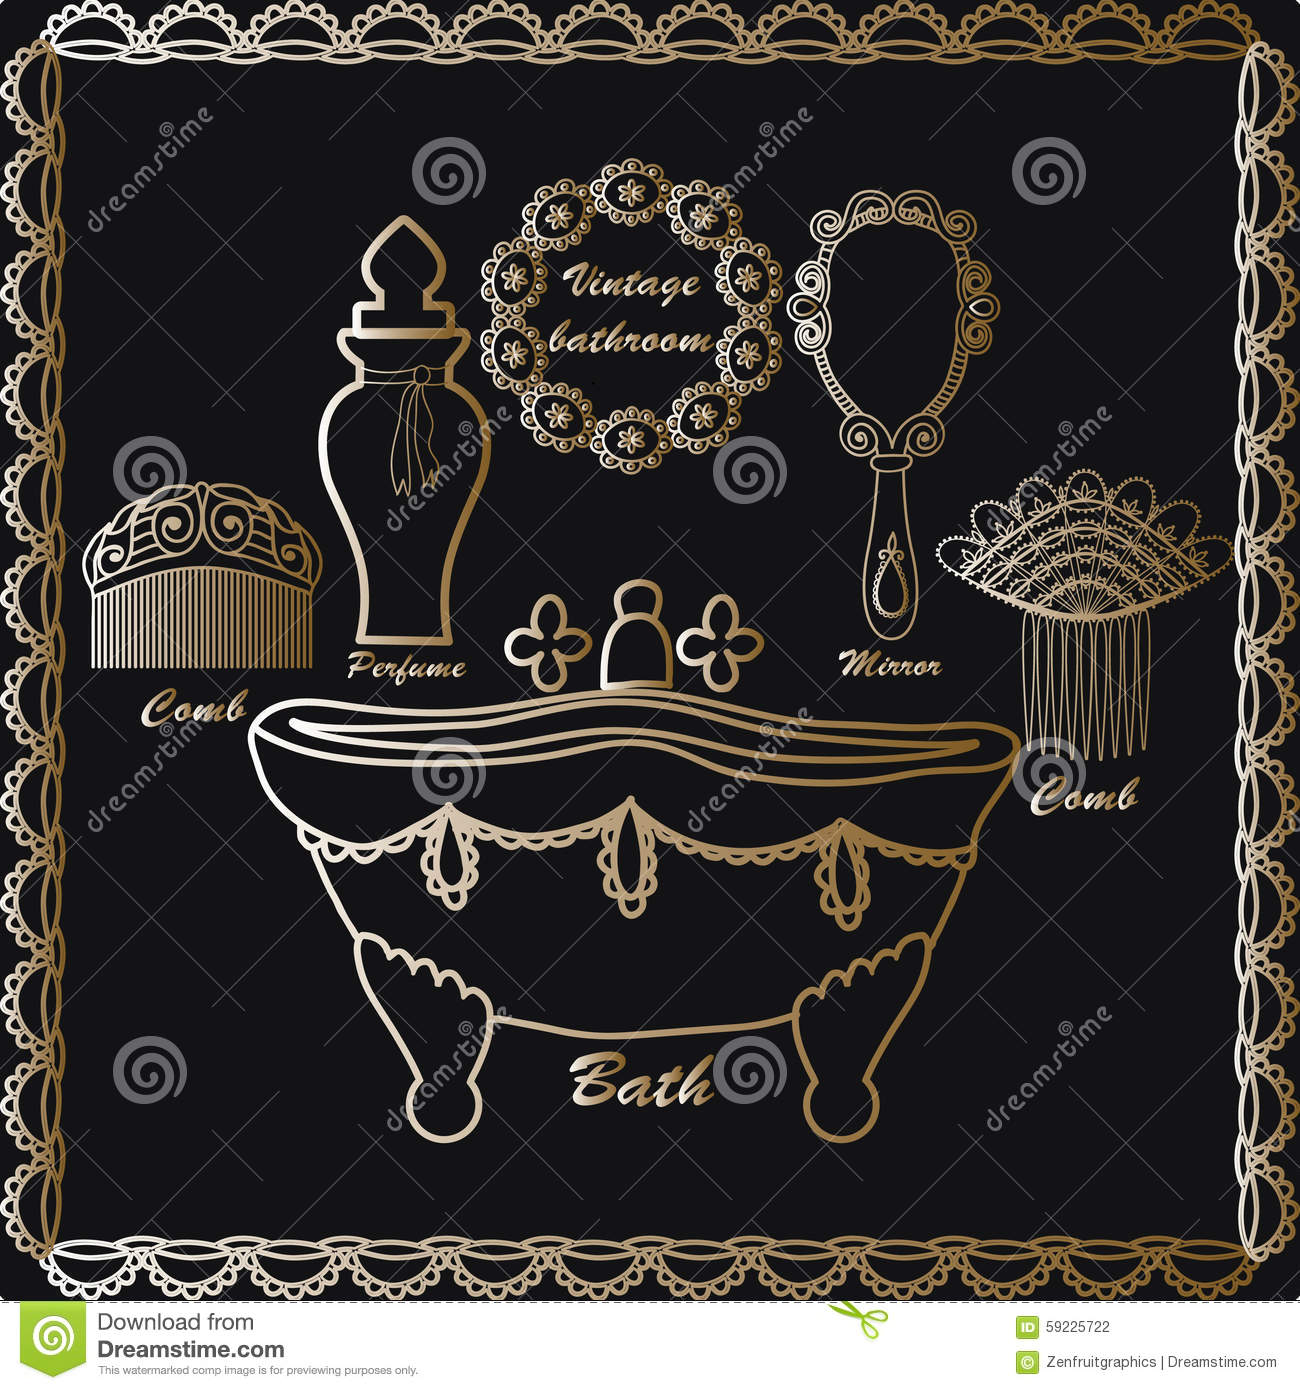 hand drawn vintage bathroom icons set retro poster vintage elements vintage bathtub hair combs. Black Bedroom Furniture Sets. Home Design Ideas